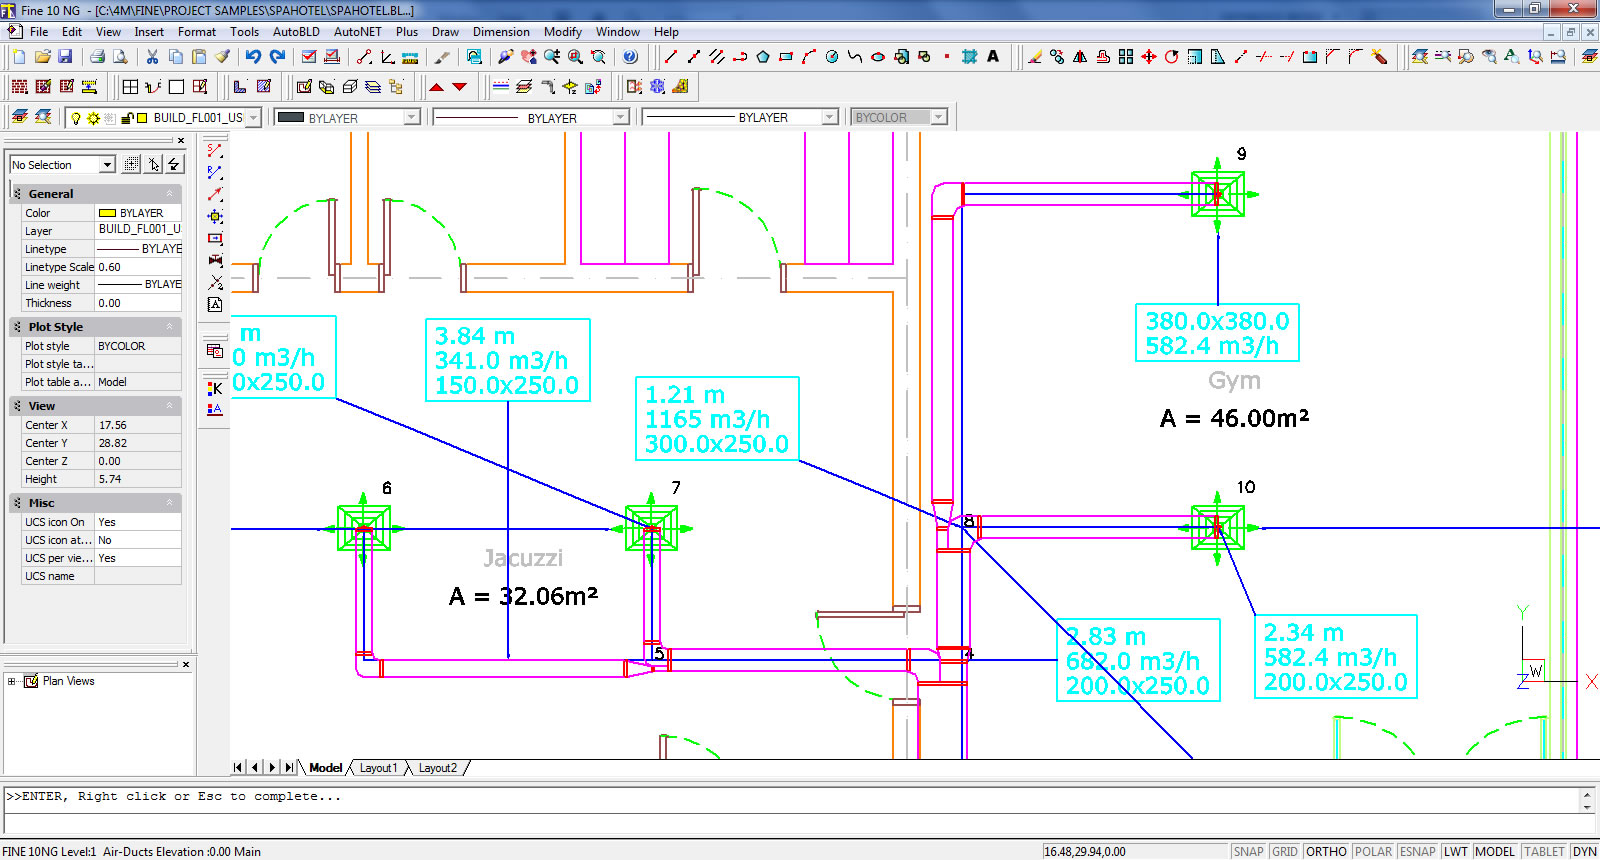 4m Bim Cad Software For Architecture Engineering Construction Hvac Drawing Layout Floor Plan With Air Ducts